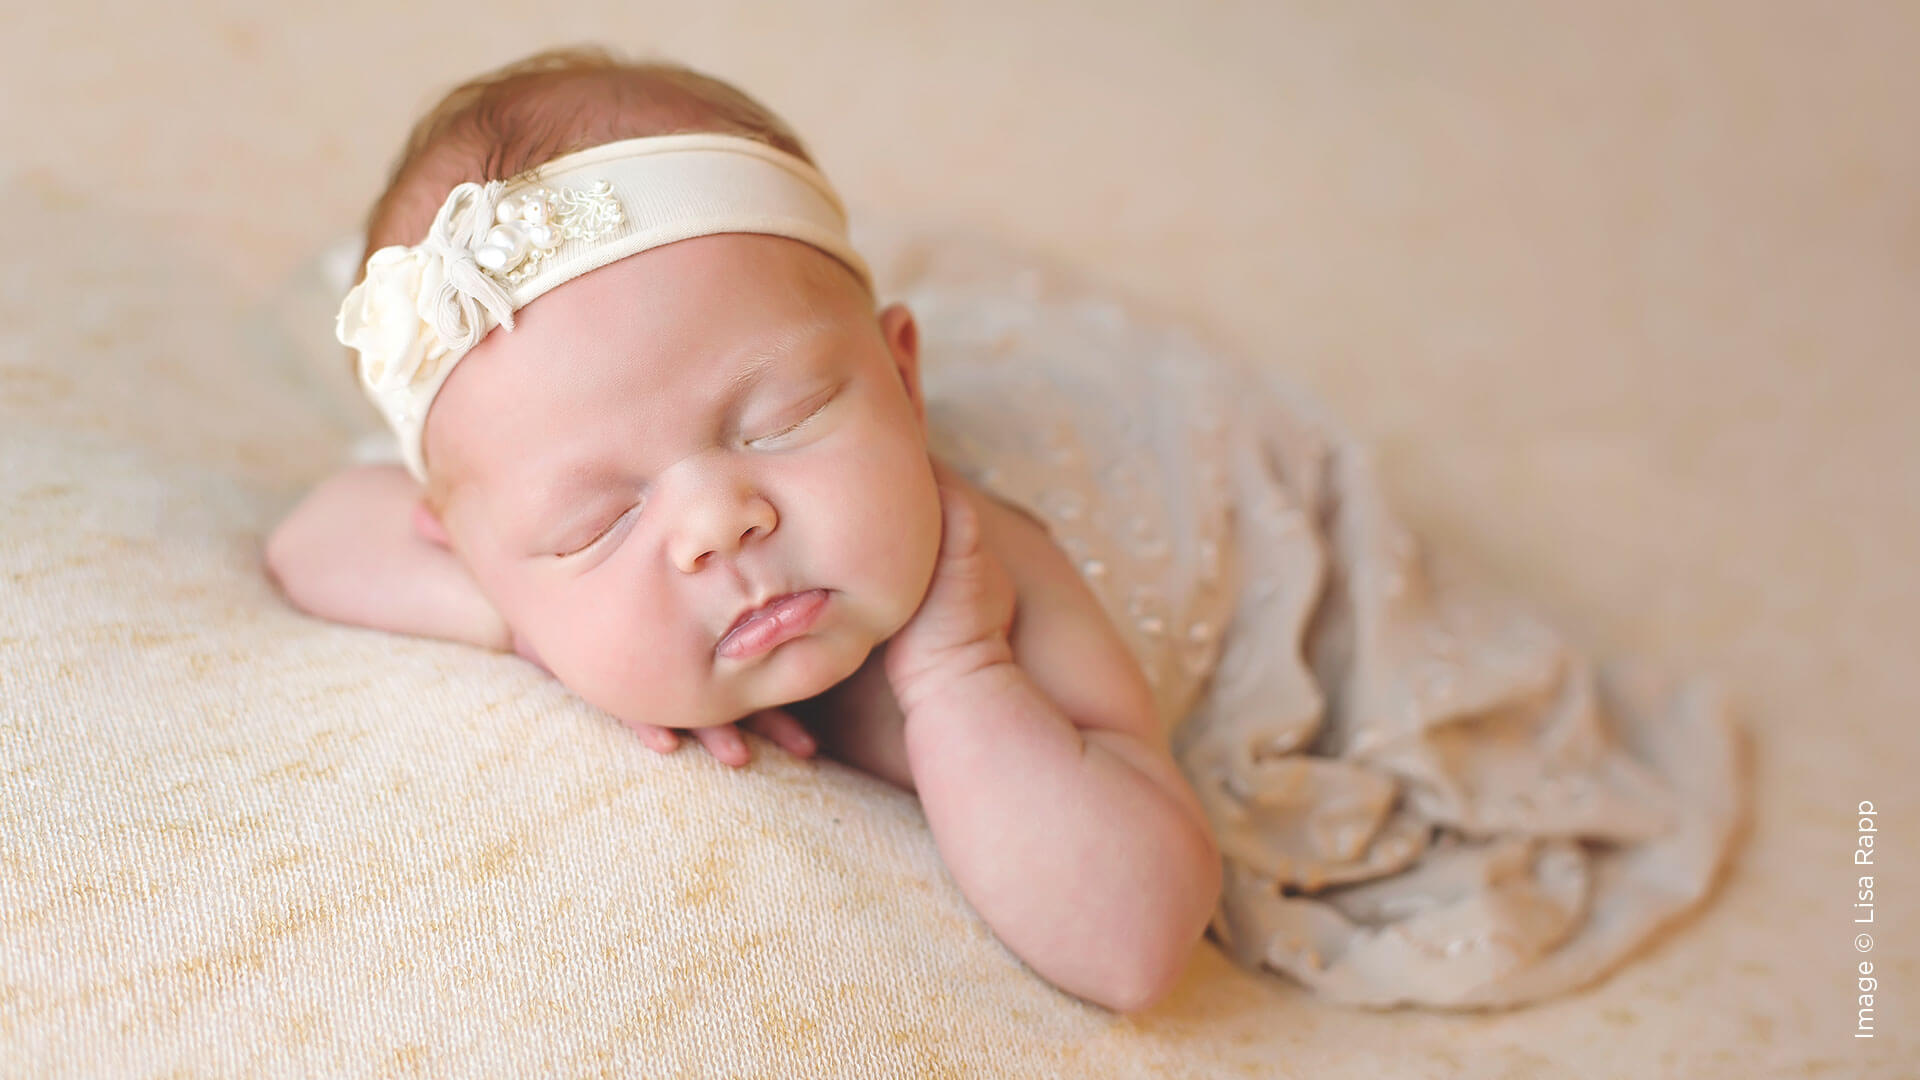 Newborn photography starting from scratch